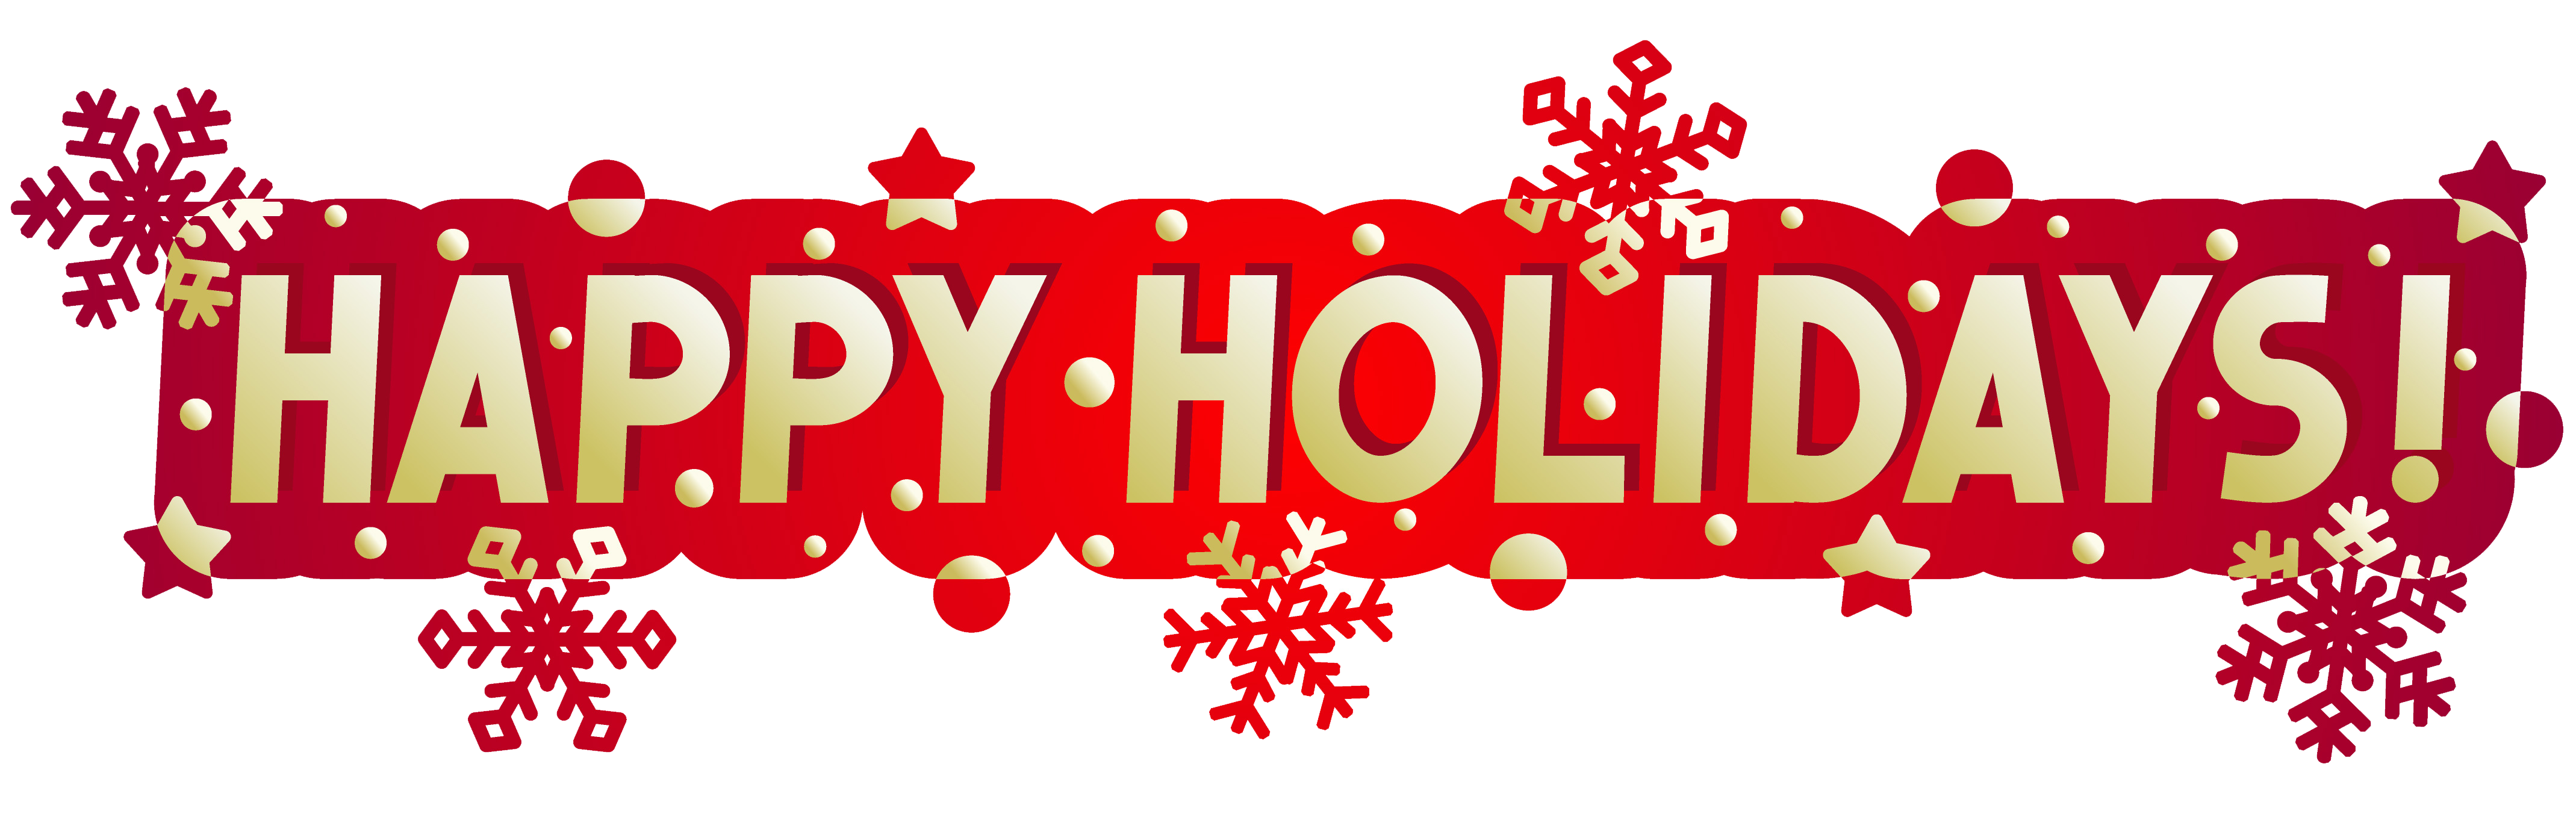 Happy holidays clip art png. Collection of clipart